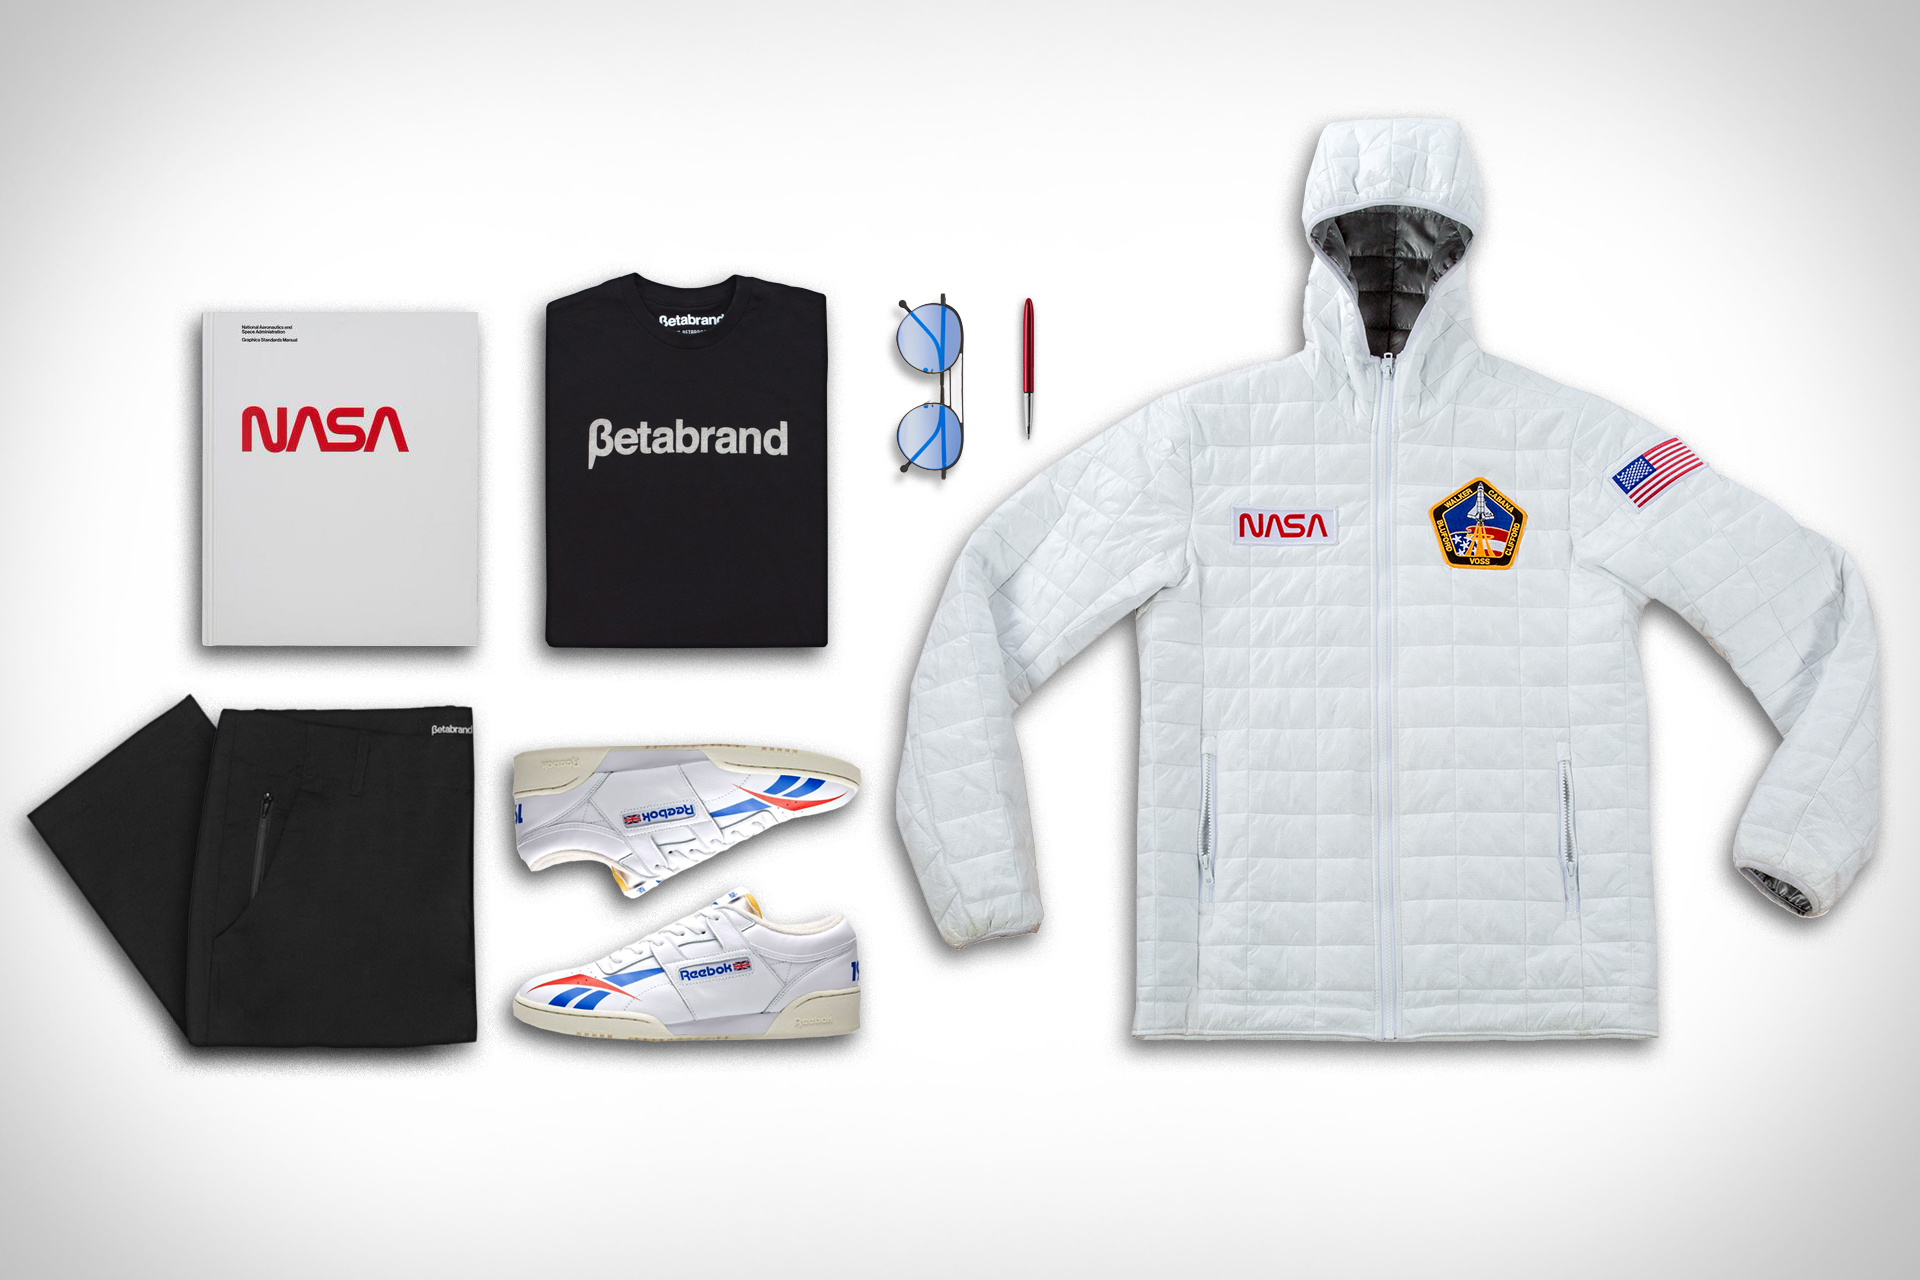 Garb: Cape Canaveral